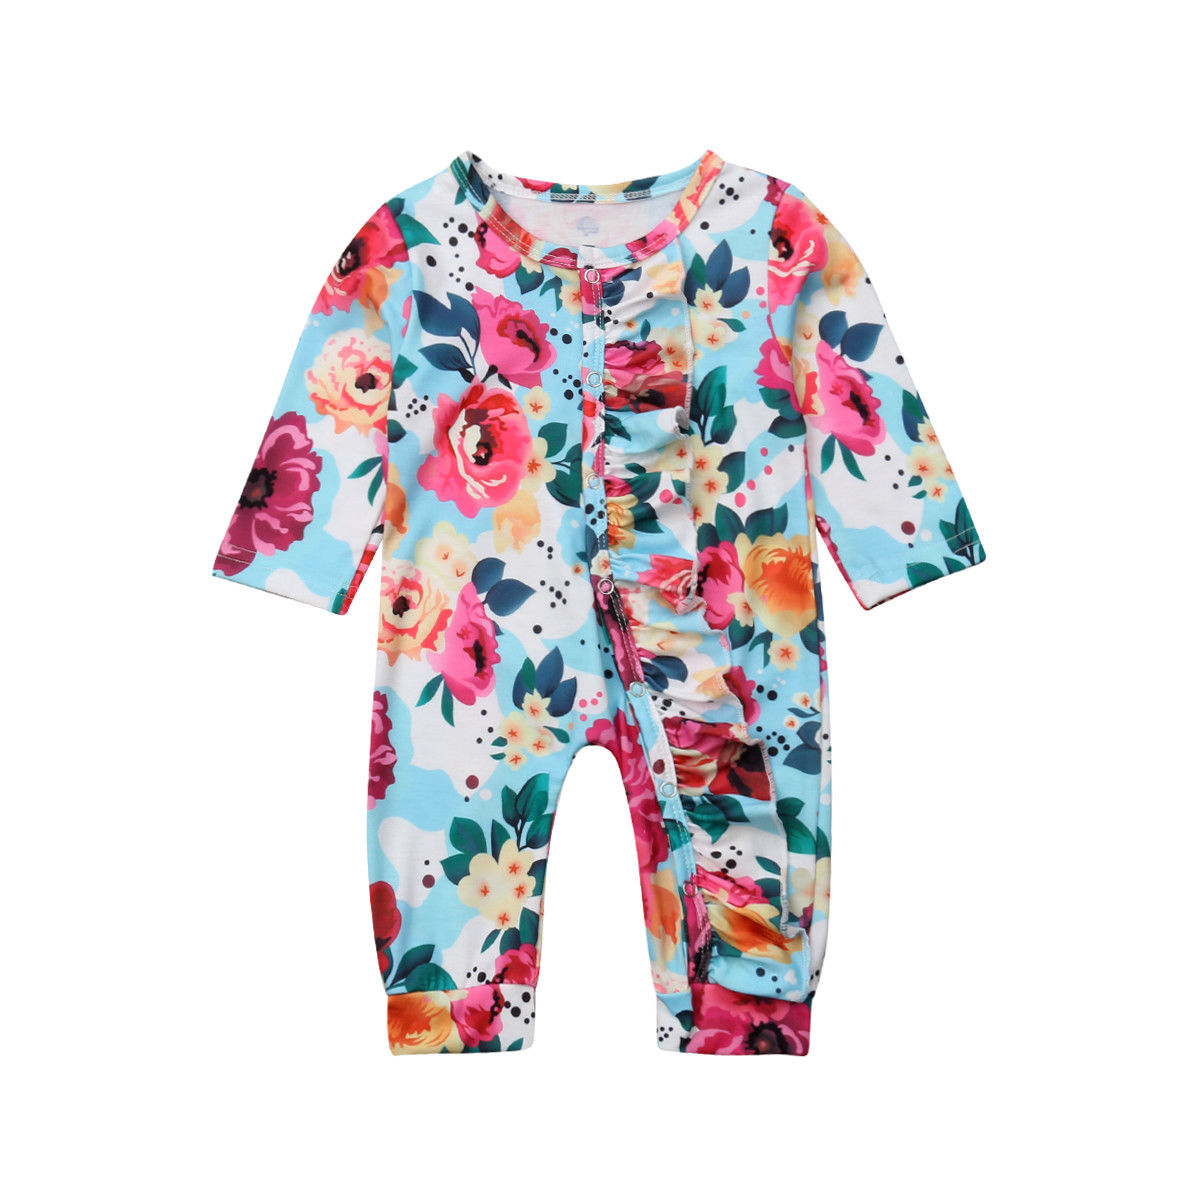 Pudcoco Newborn Infant Kid Baby Girls Floral Clothes Jumpsuit Print   Romper   Outfits